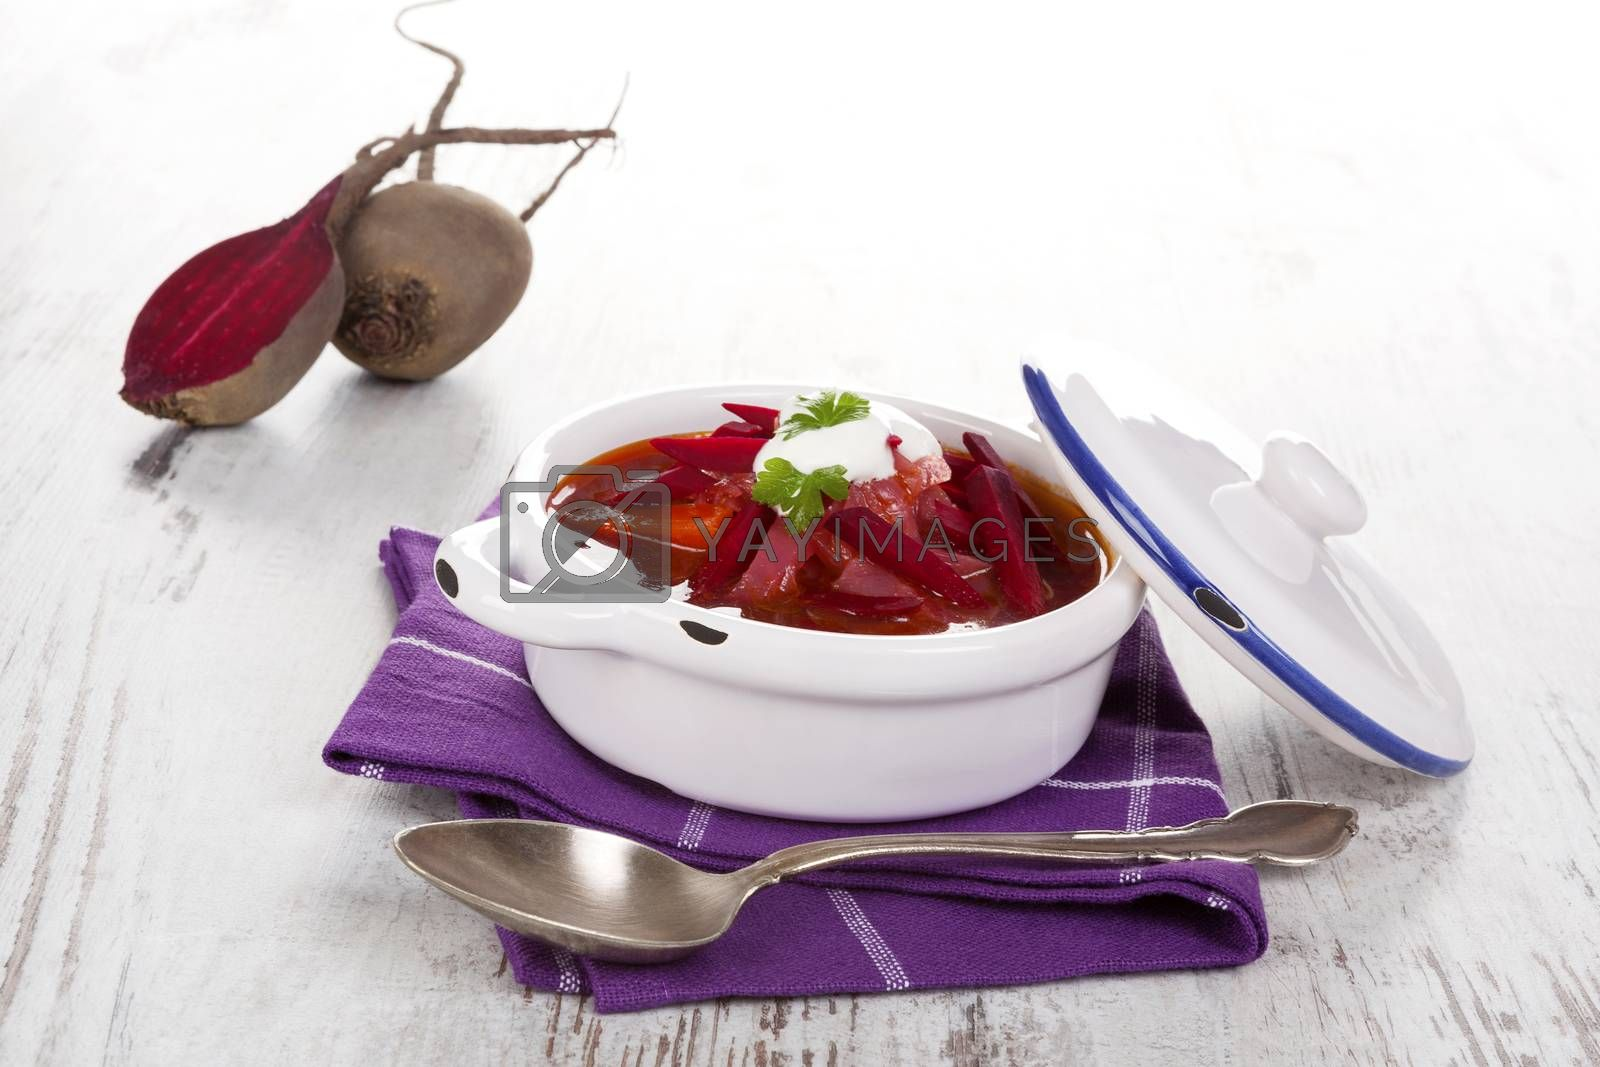 Delicious ukrainian borsch soup with fresh beetroot vegetable on purple cloth on rustic wooden table. Traditional european cuisine.